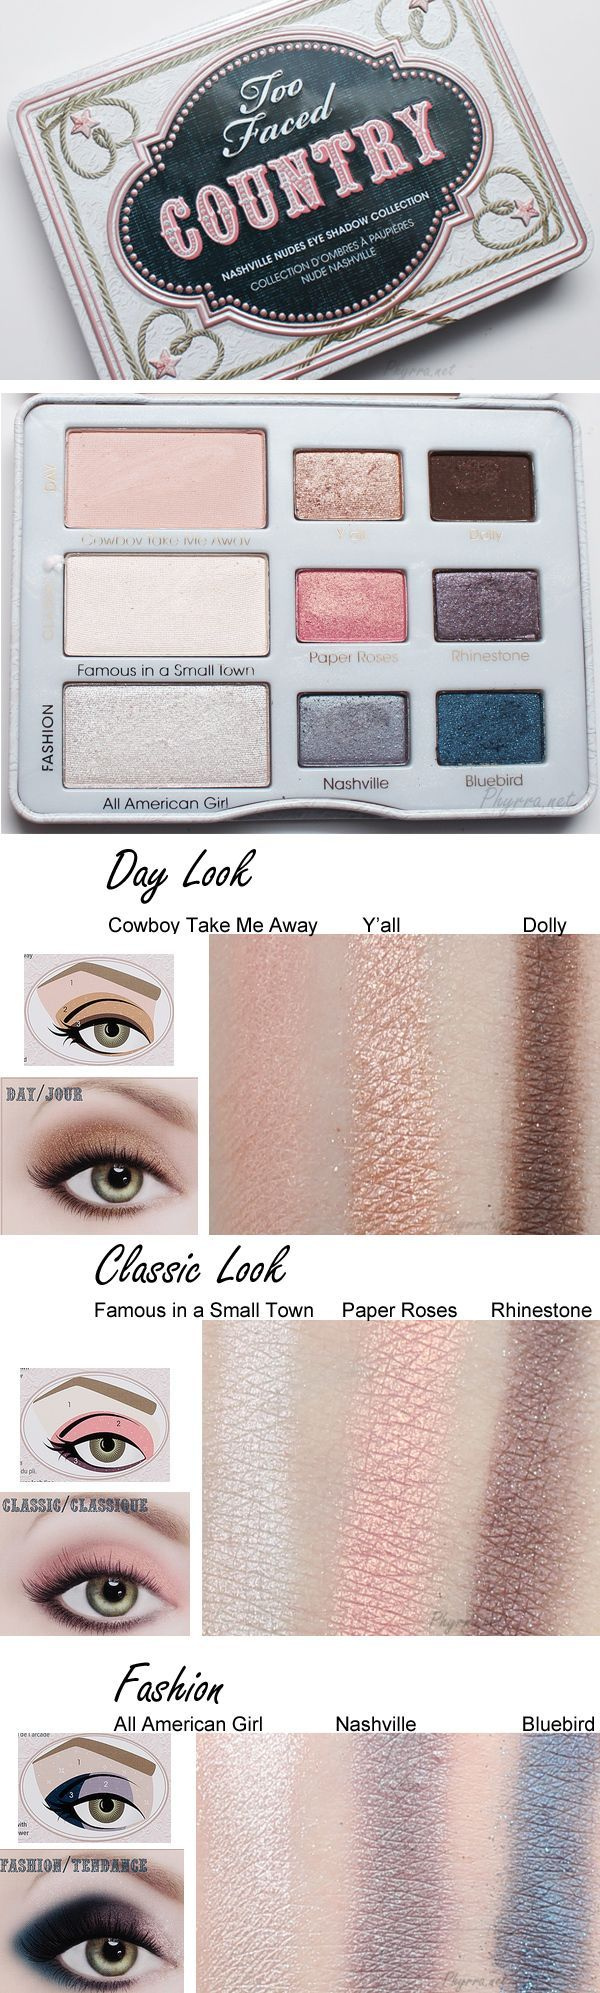 Too Faced Country Palette eye makeup looks | thebeautyspotqld.com.au